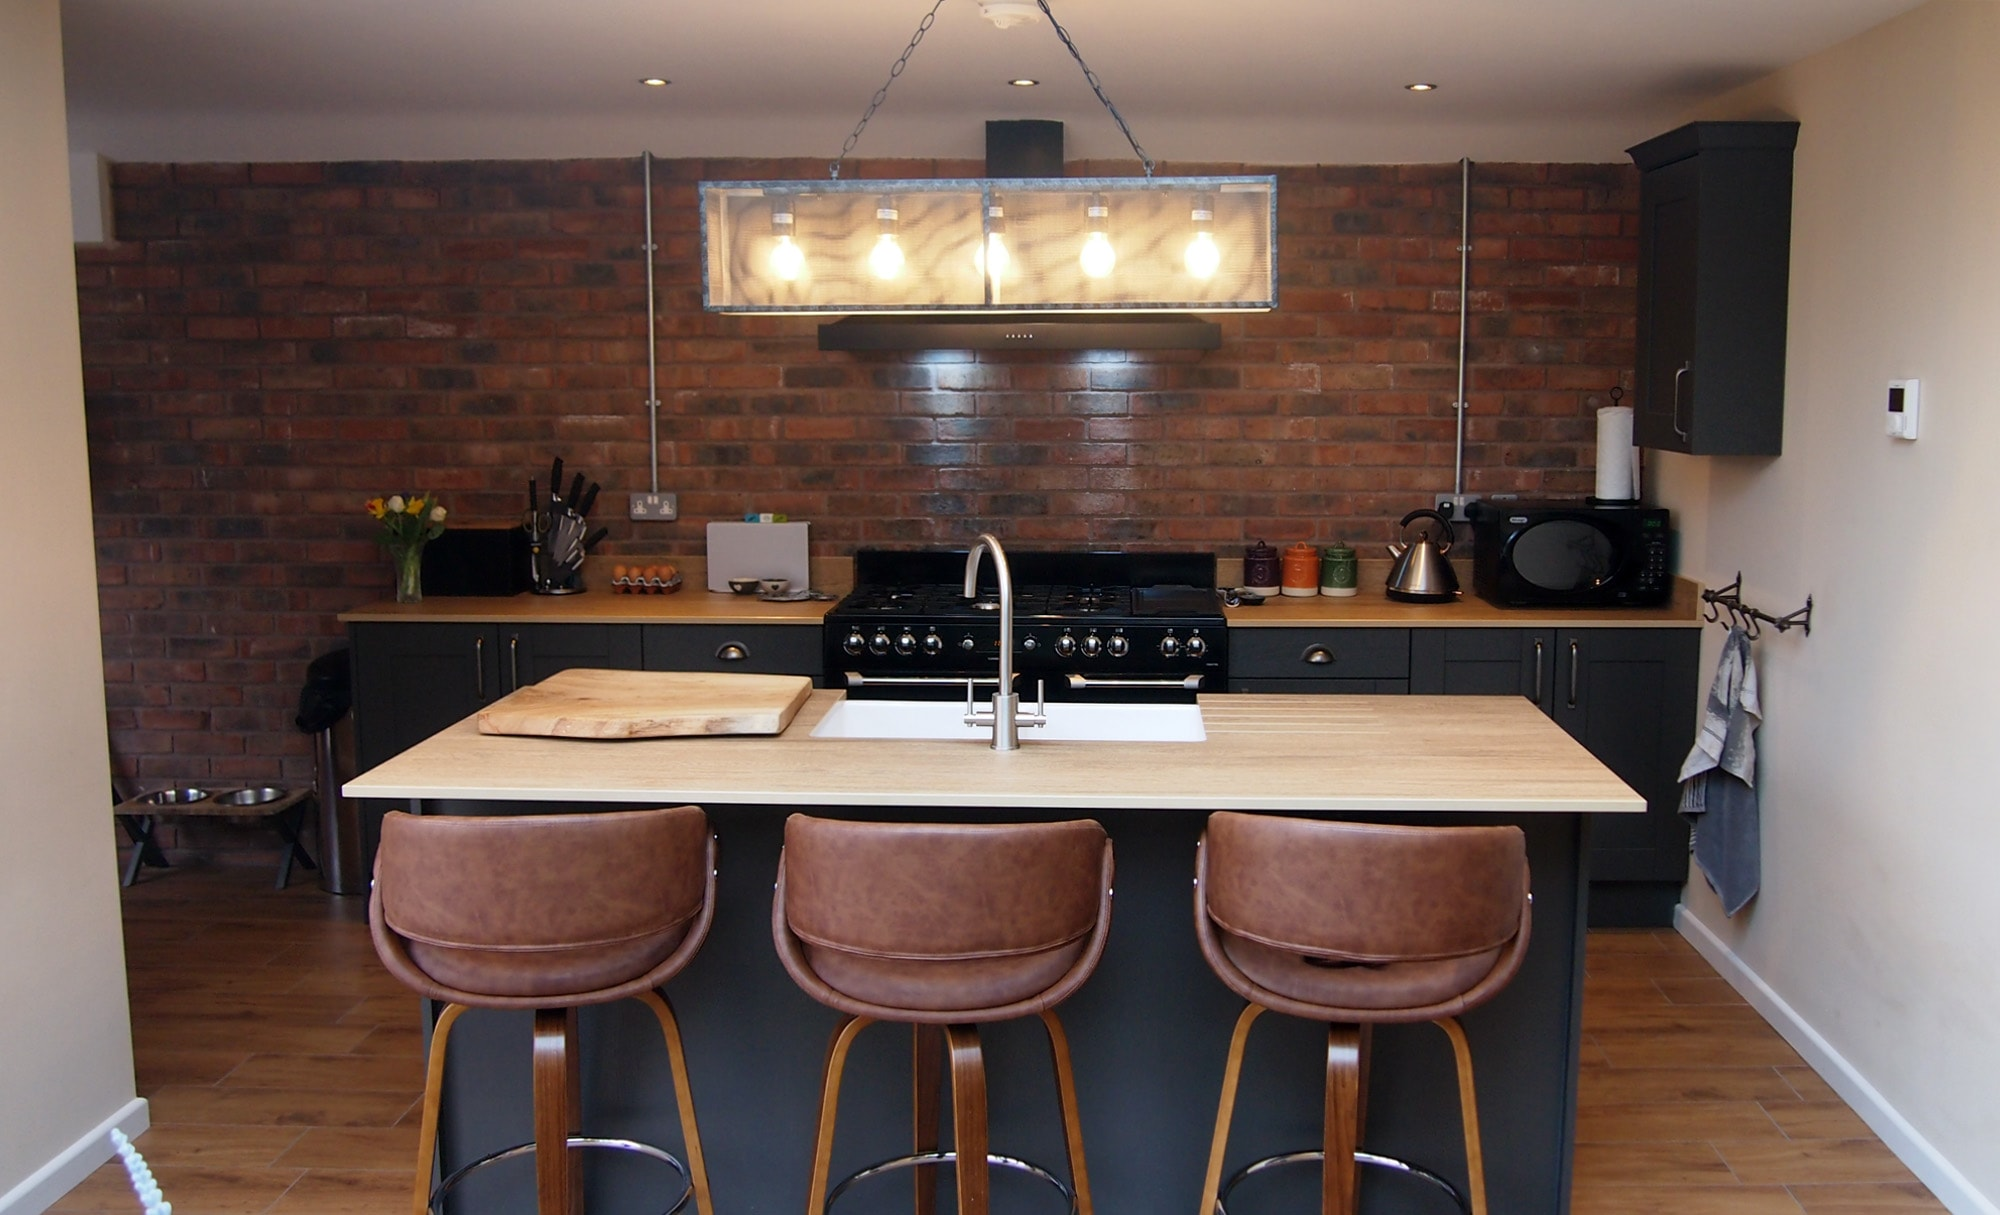 The Gallery Madison Graphite Kitchen for Mr & Mrs Wooten of Dudley